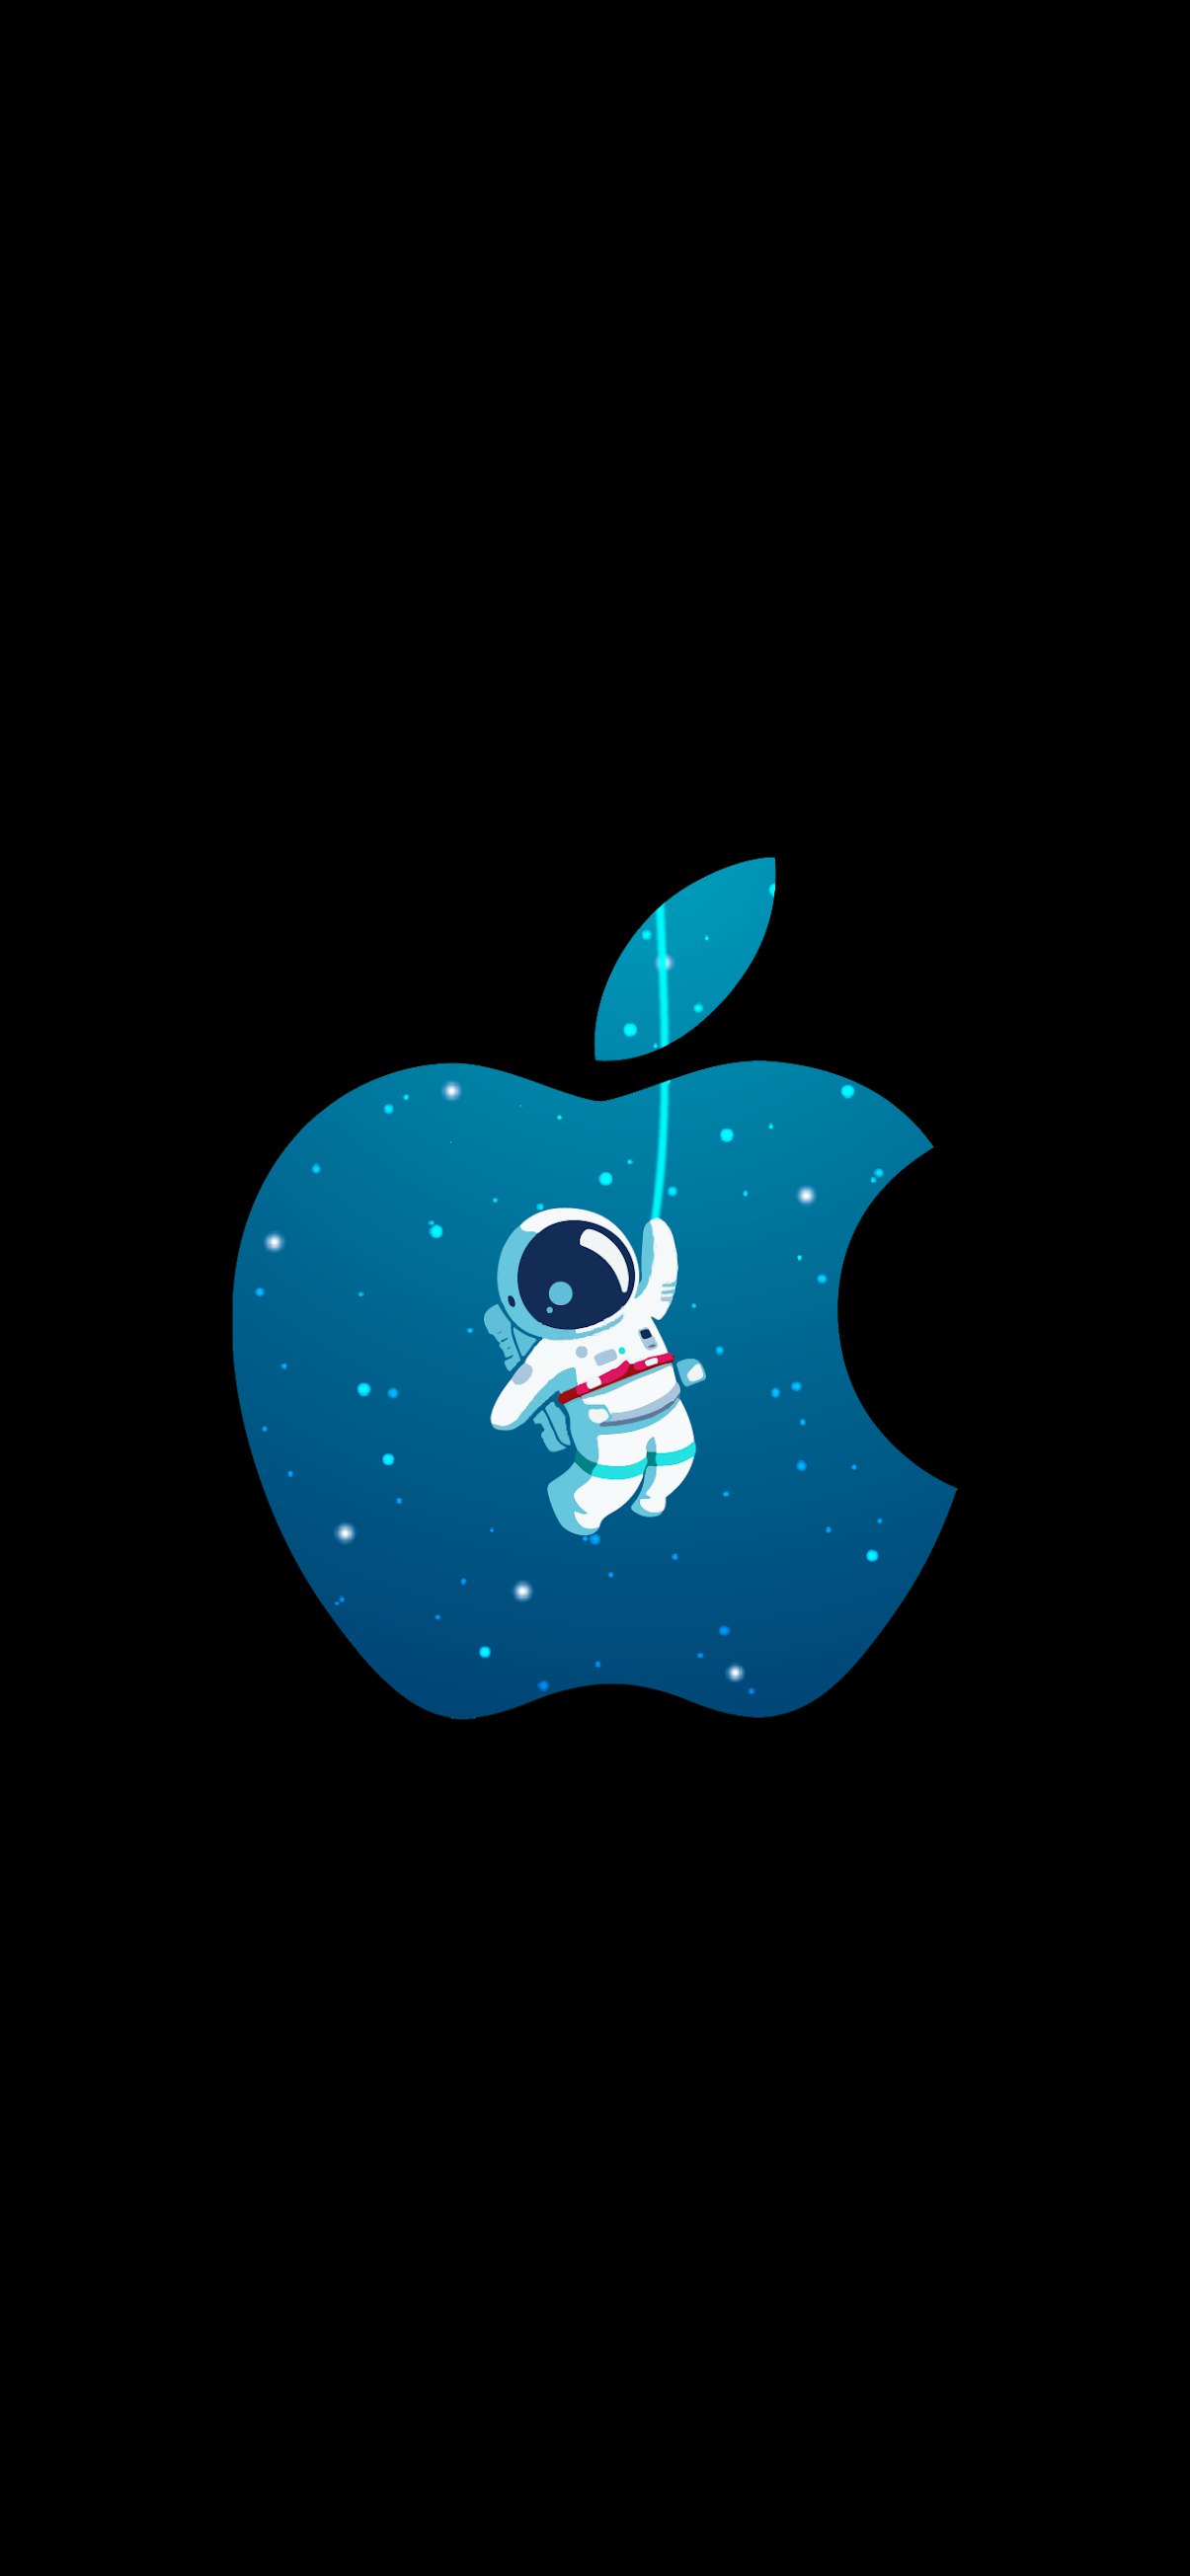 astronaut and apple logo in a beautiful oled wallpaper lock screen for iphone x 13 14 15